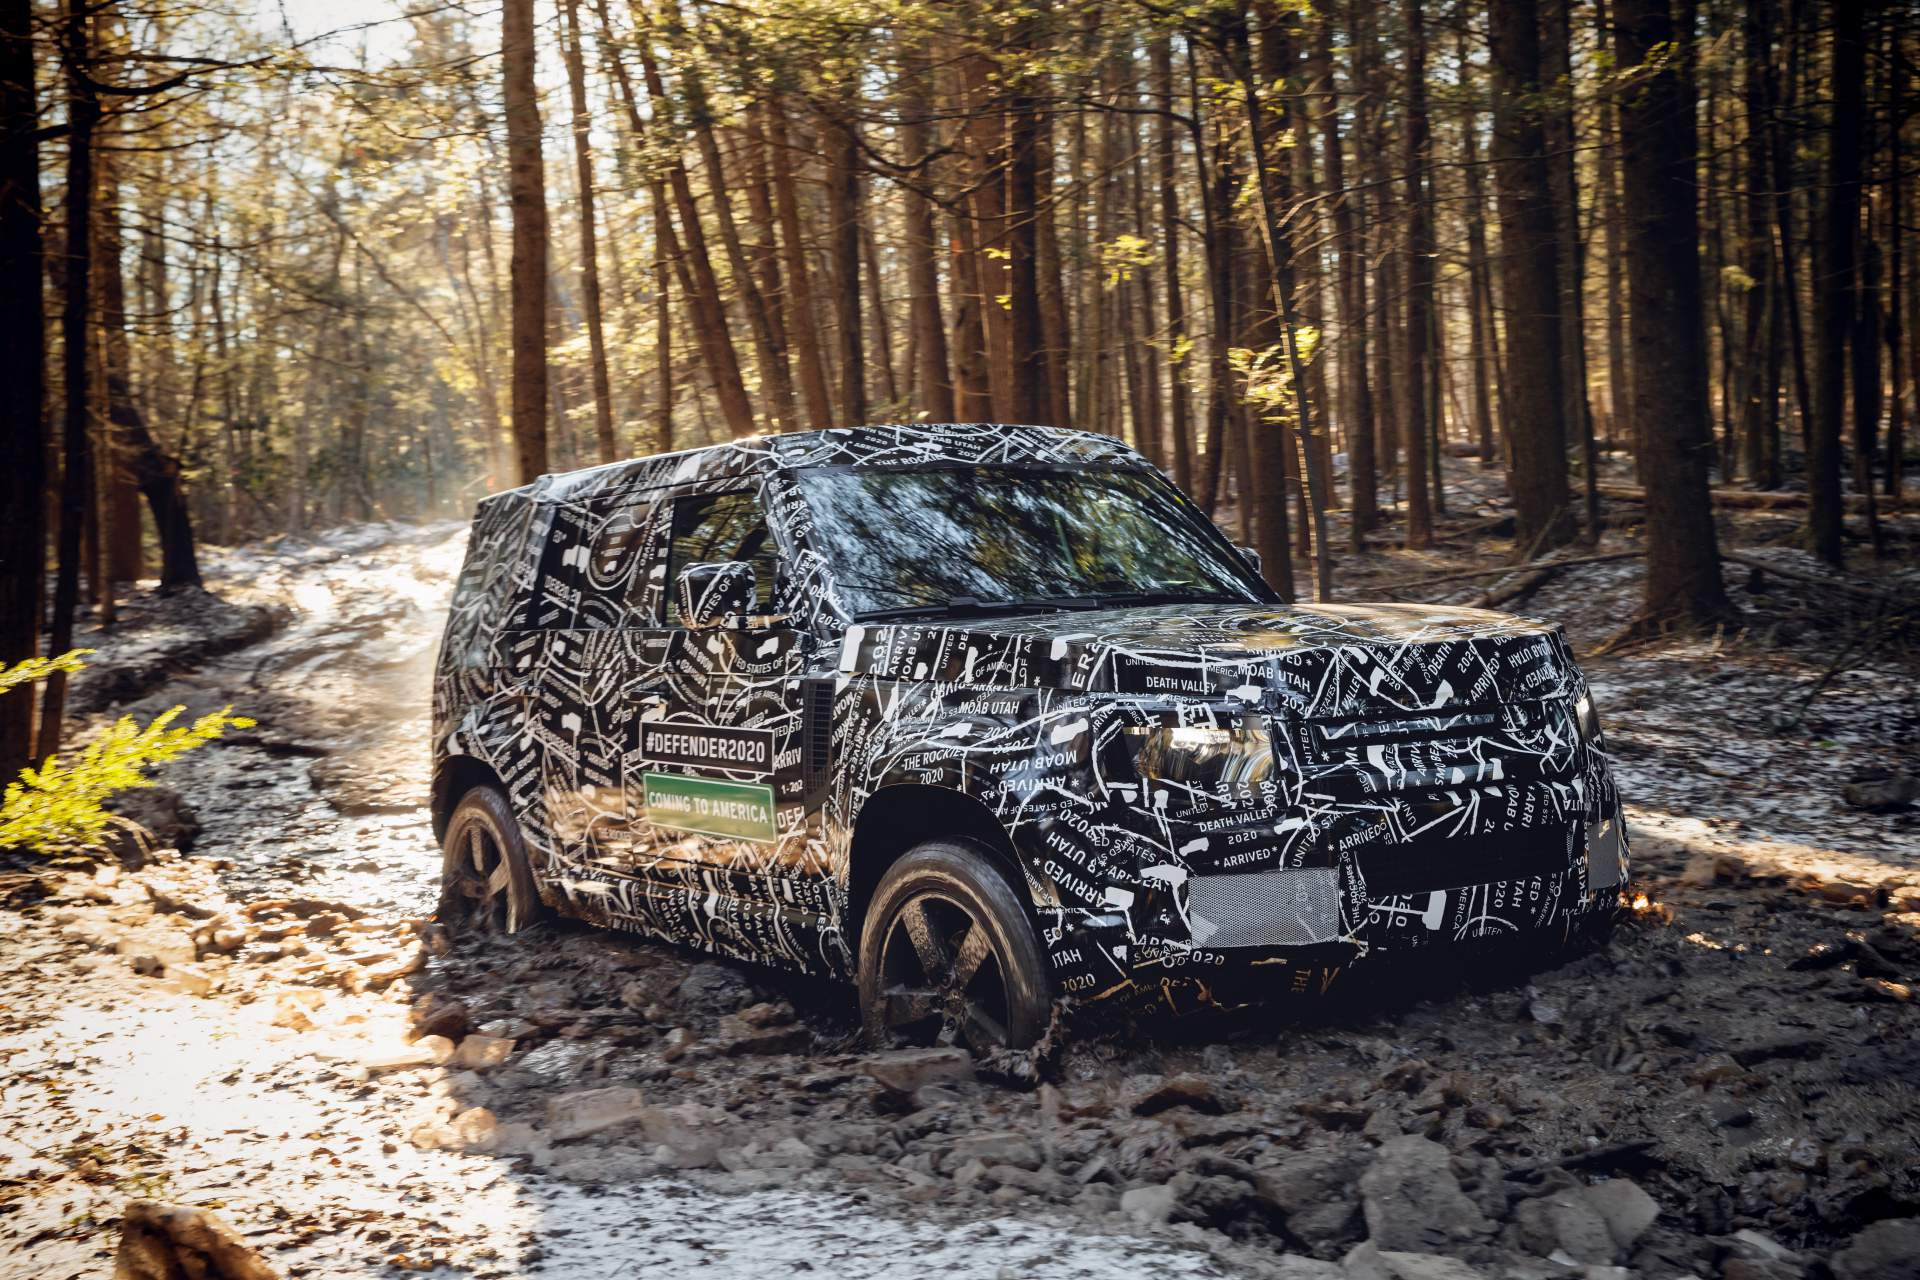 Photo of 2020 Land Rover Defender, kamuflajıyla araziye indi!